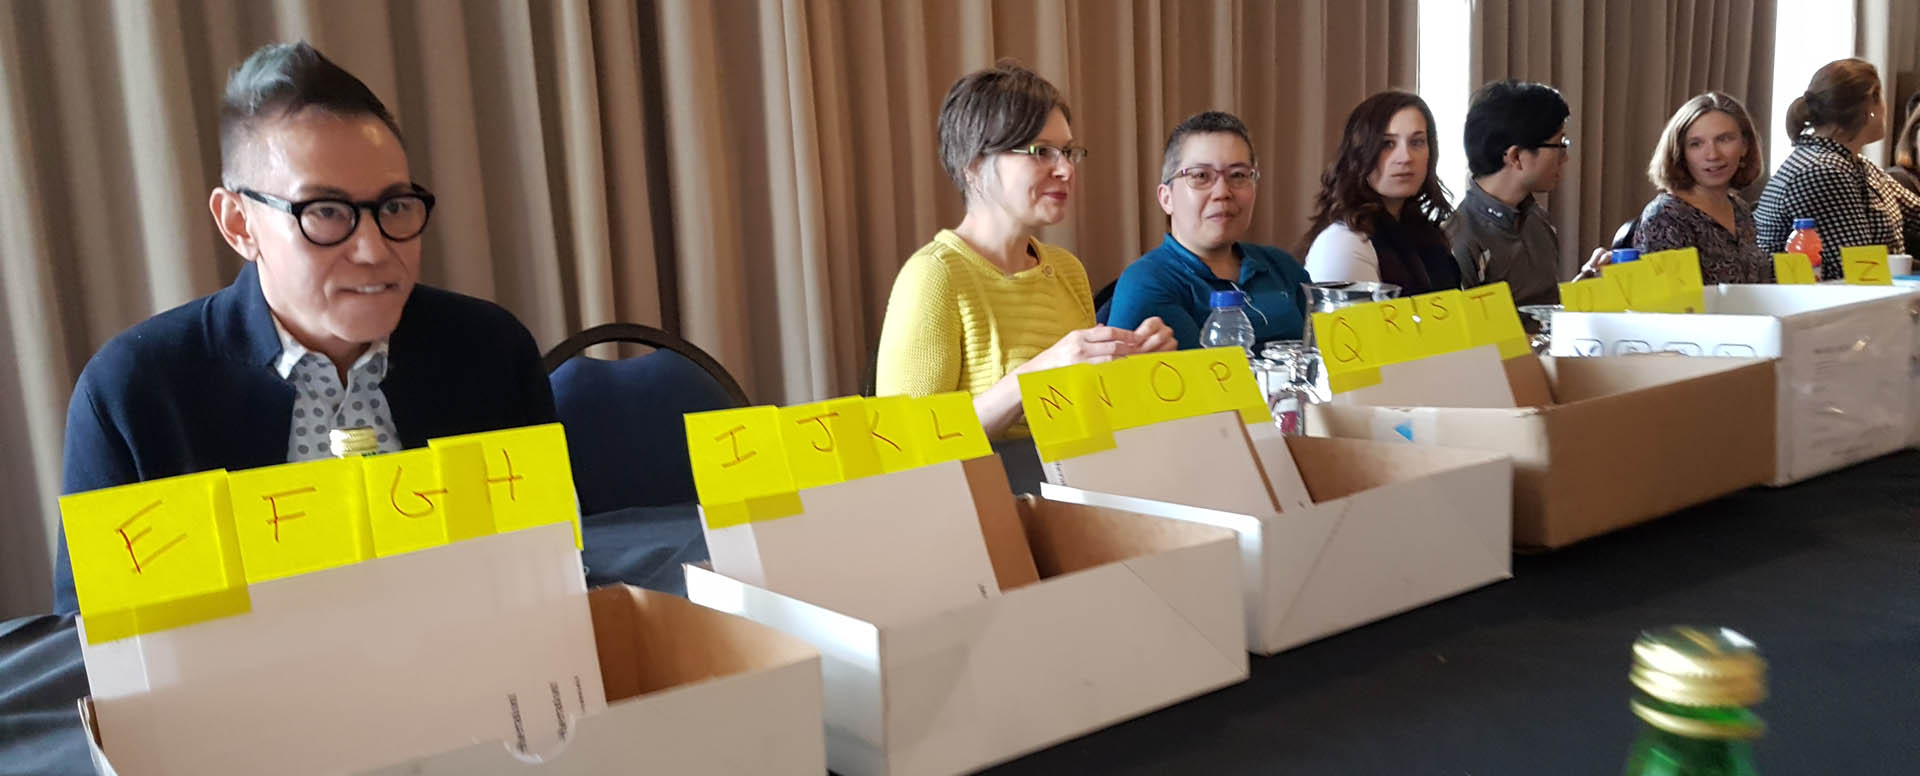 A group of volunteers sits at a table and sorts packets at the 2018 conference in Vancouver.